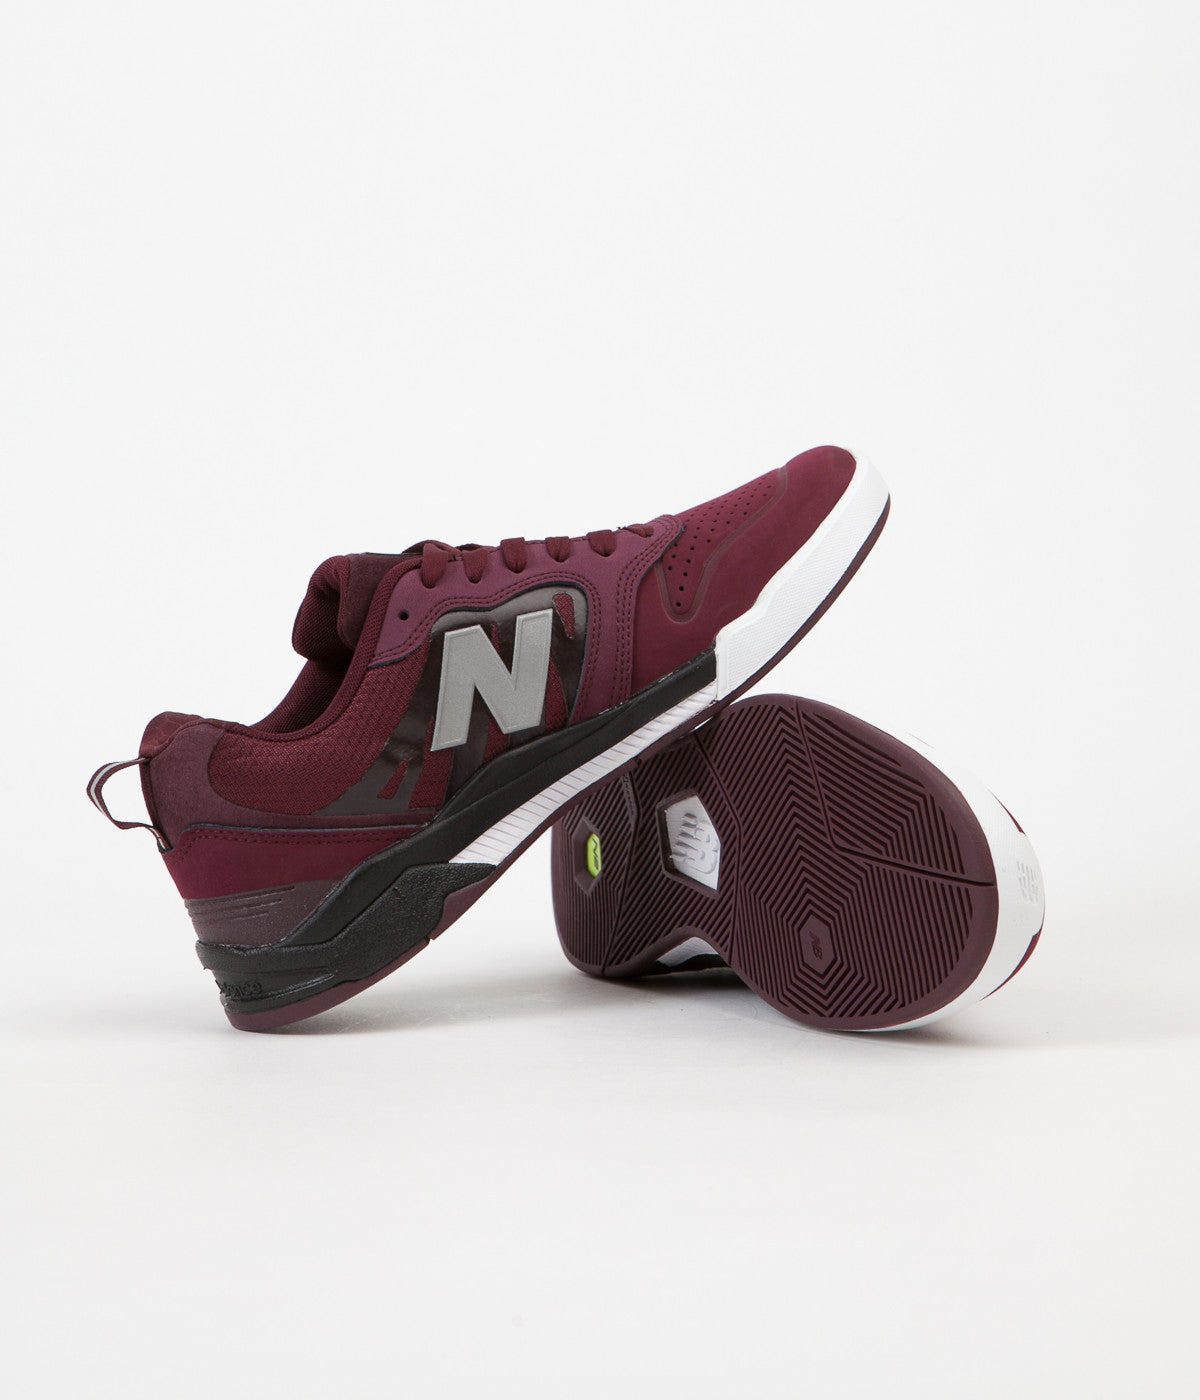 New Balance Numeric 868 Shoes - Chocolate Cherry / Black